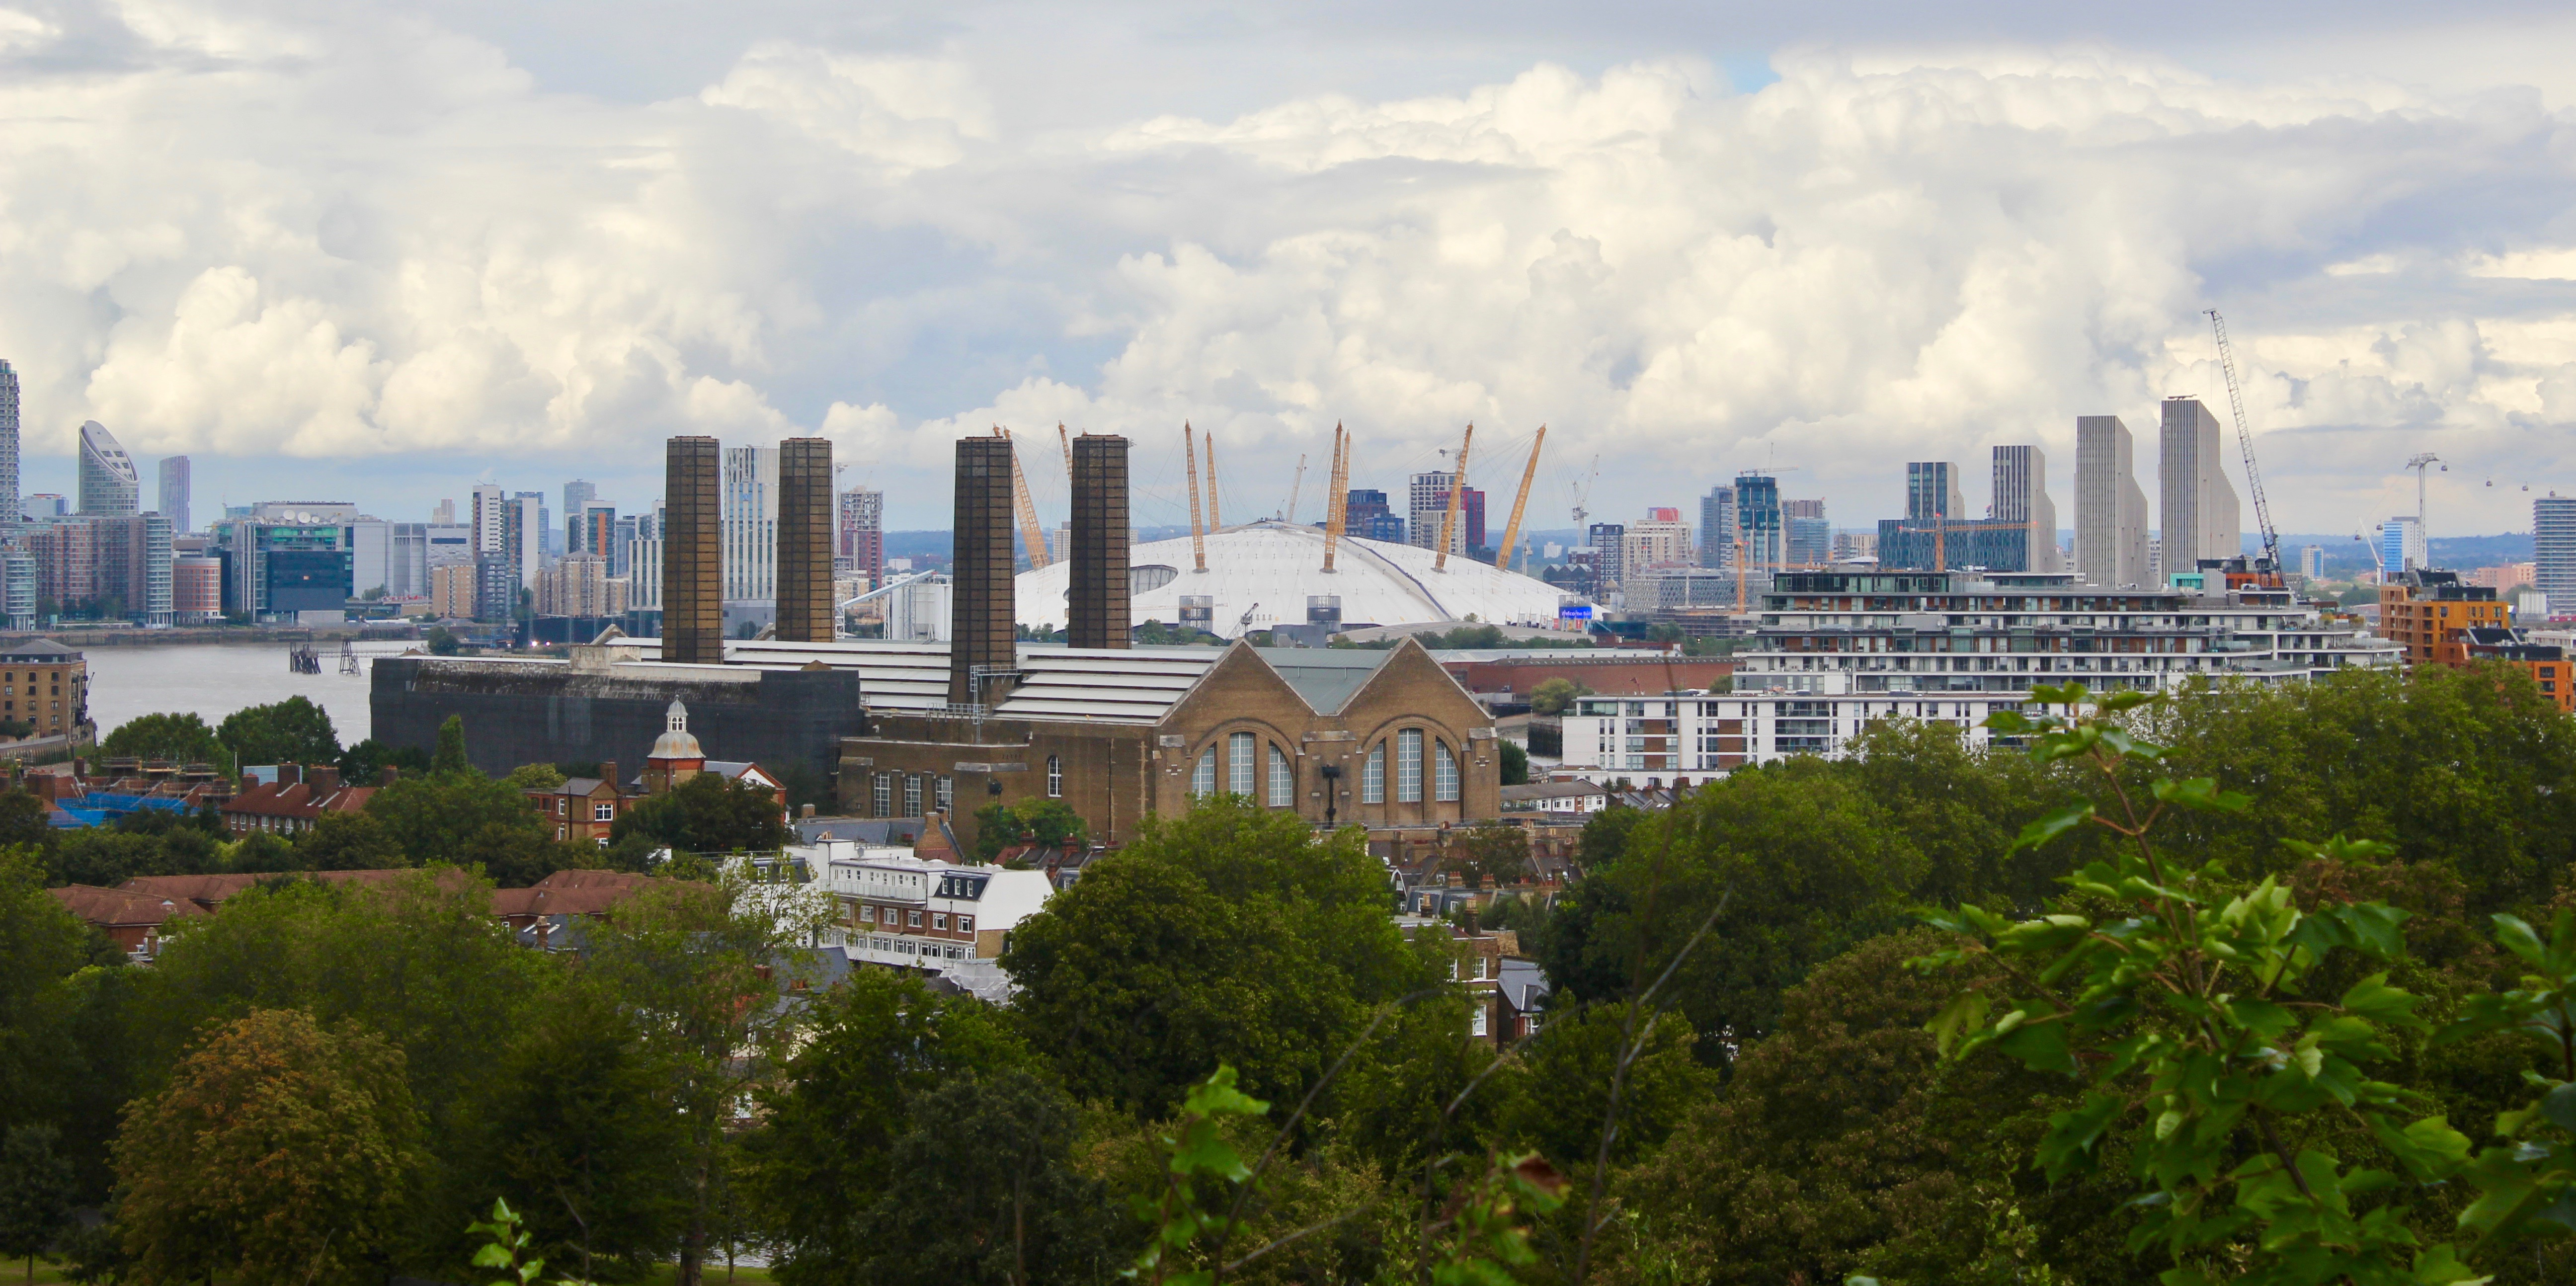 the royal observatory, royal museums of greenwich